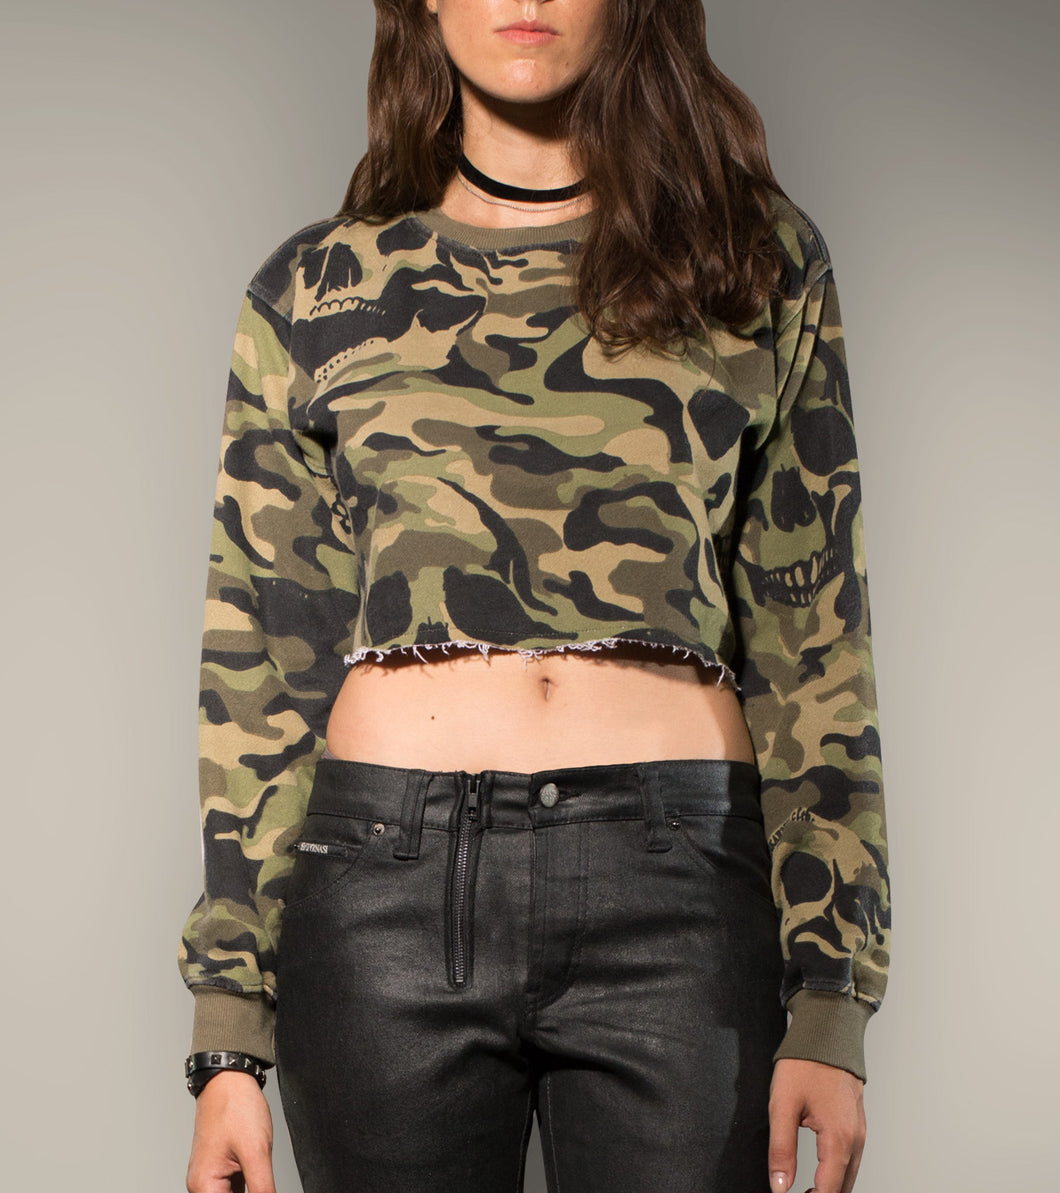 Camo Sweatshirt Crop